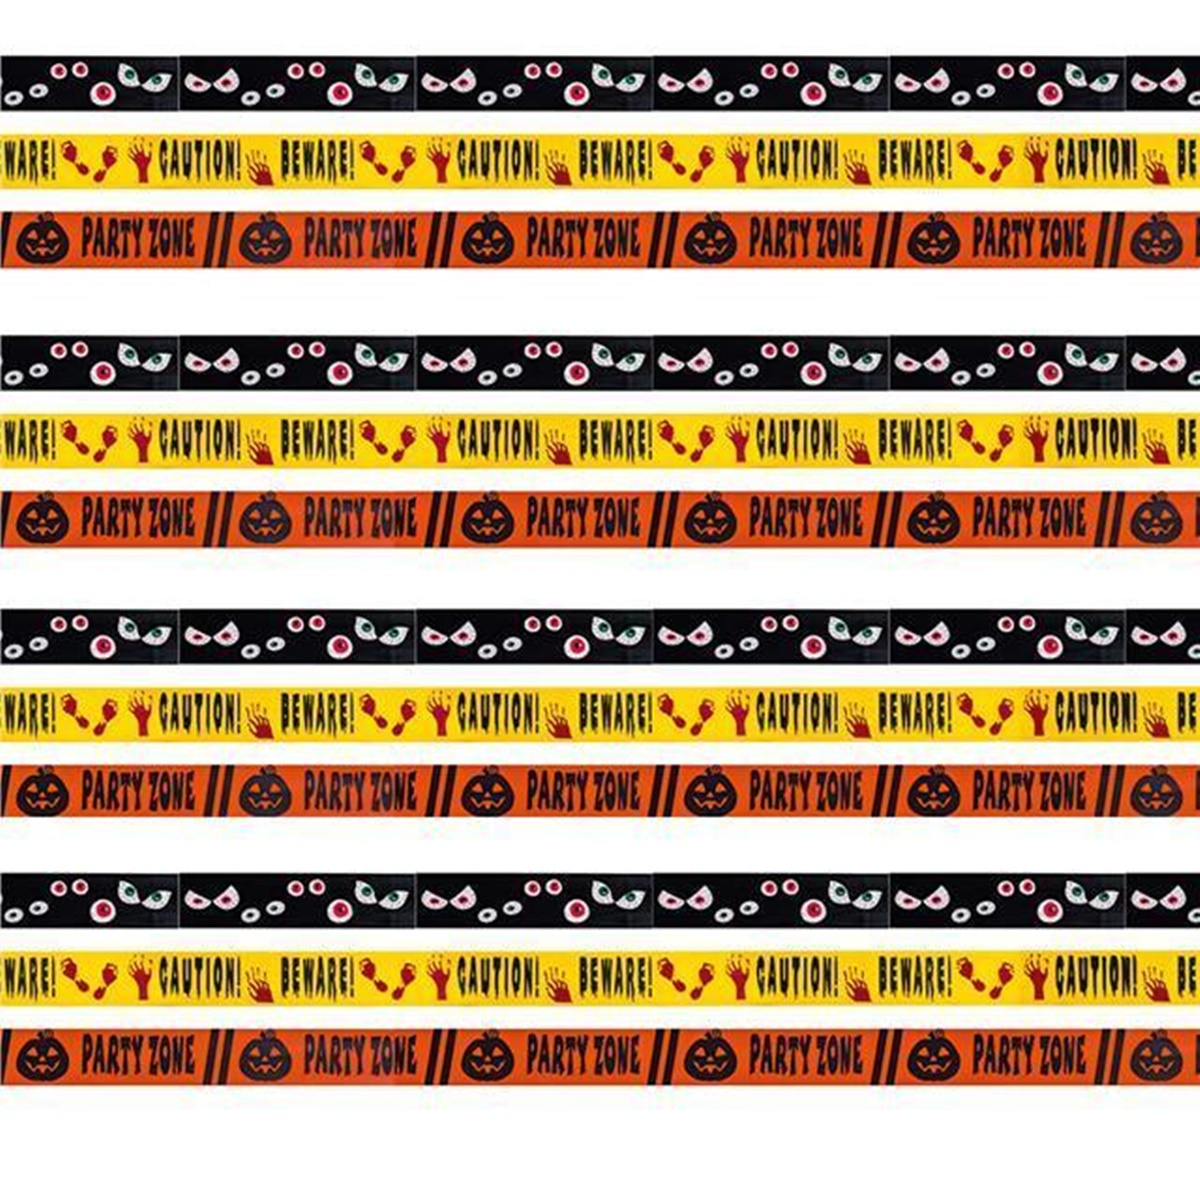 Box of 24 Halloween Decoration Fright Tape Spooky, Caution, Pumpkin Party Decoration